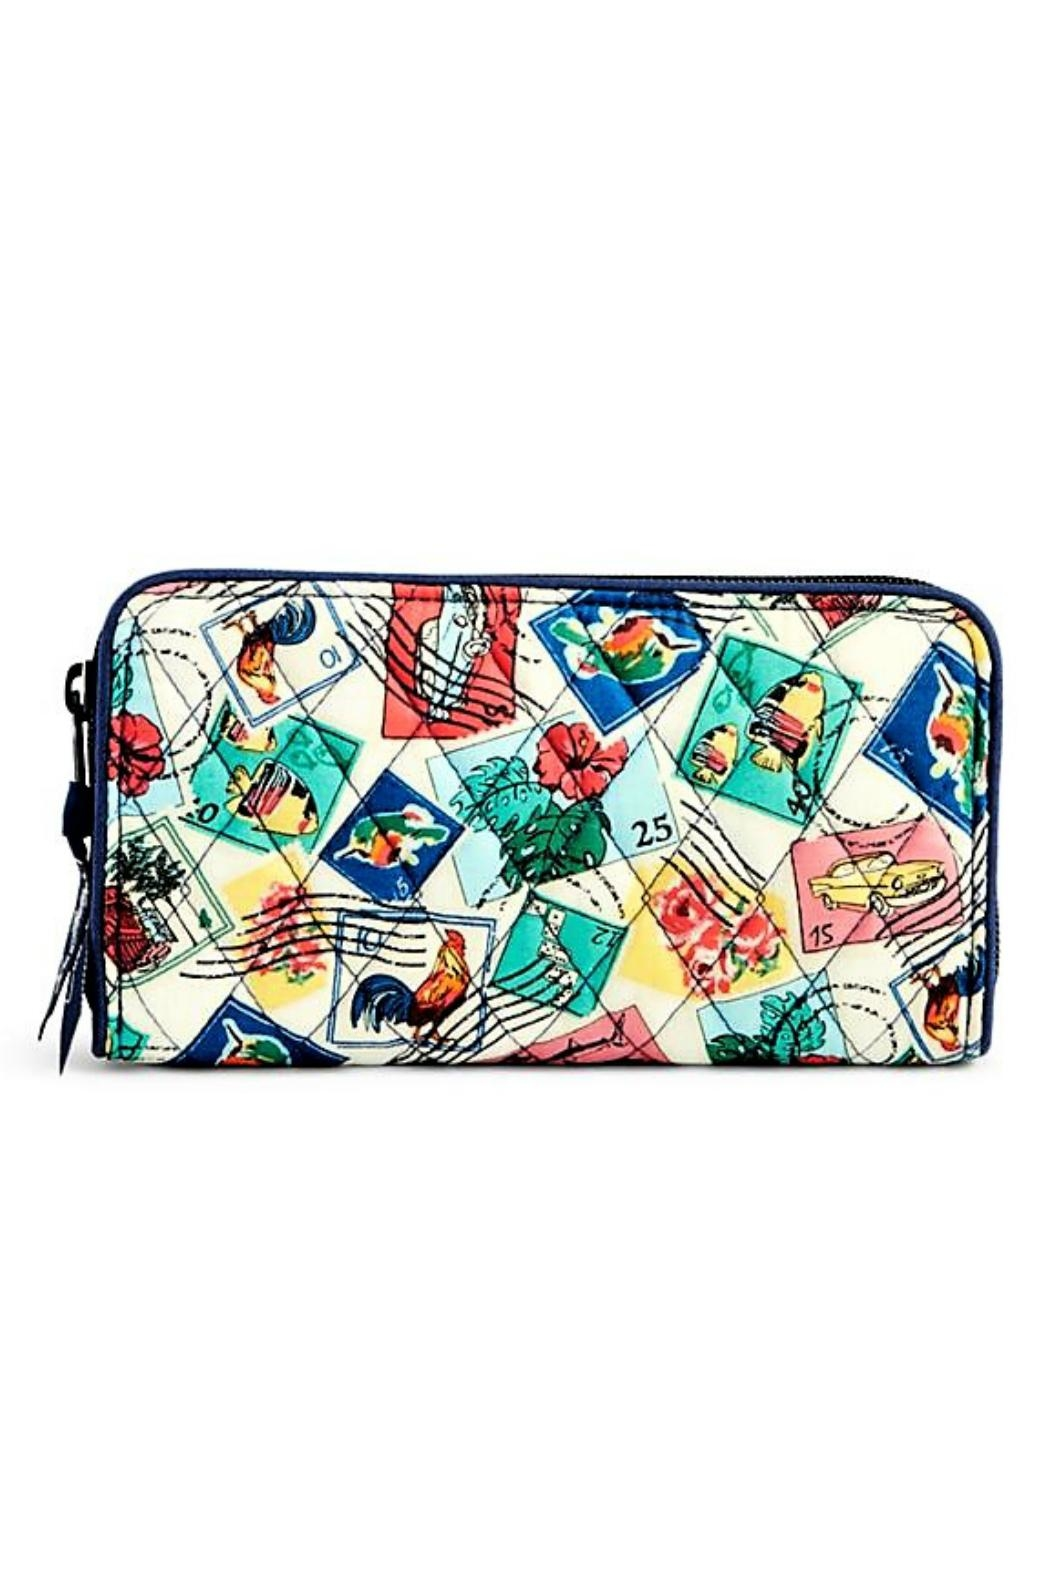 31672bcfcf Vera Bradley Cuban Stamps Georgia Wallet from Kentucky by Mimi s ...